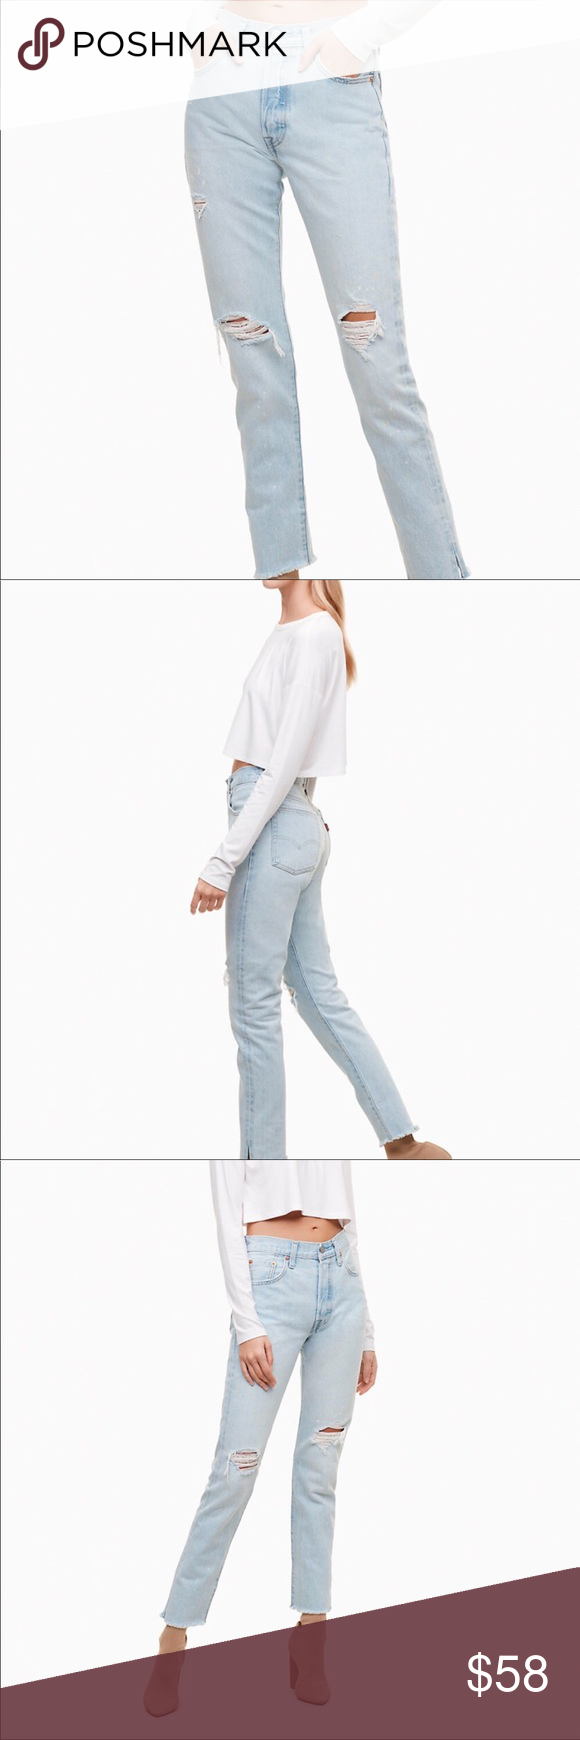 0e369fb3bf2 NWT Levi s 501 Skinny Jeans - sound visions PRICE IS FIRM.Retailers price is